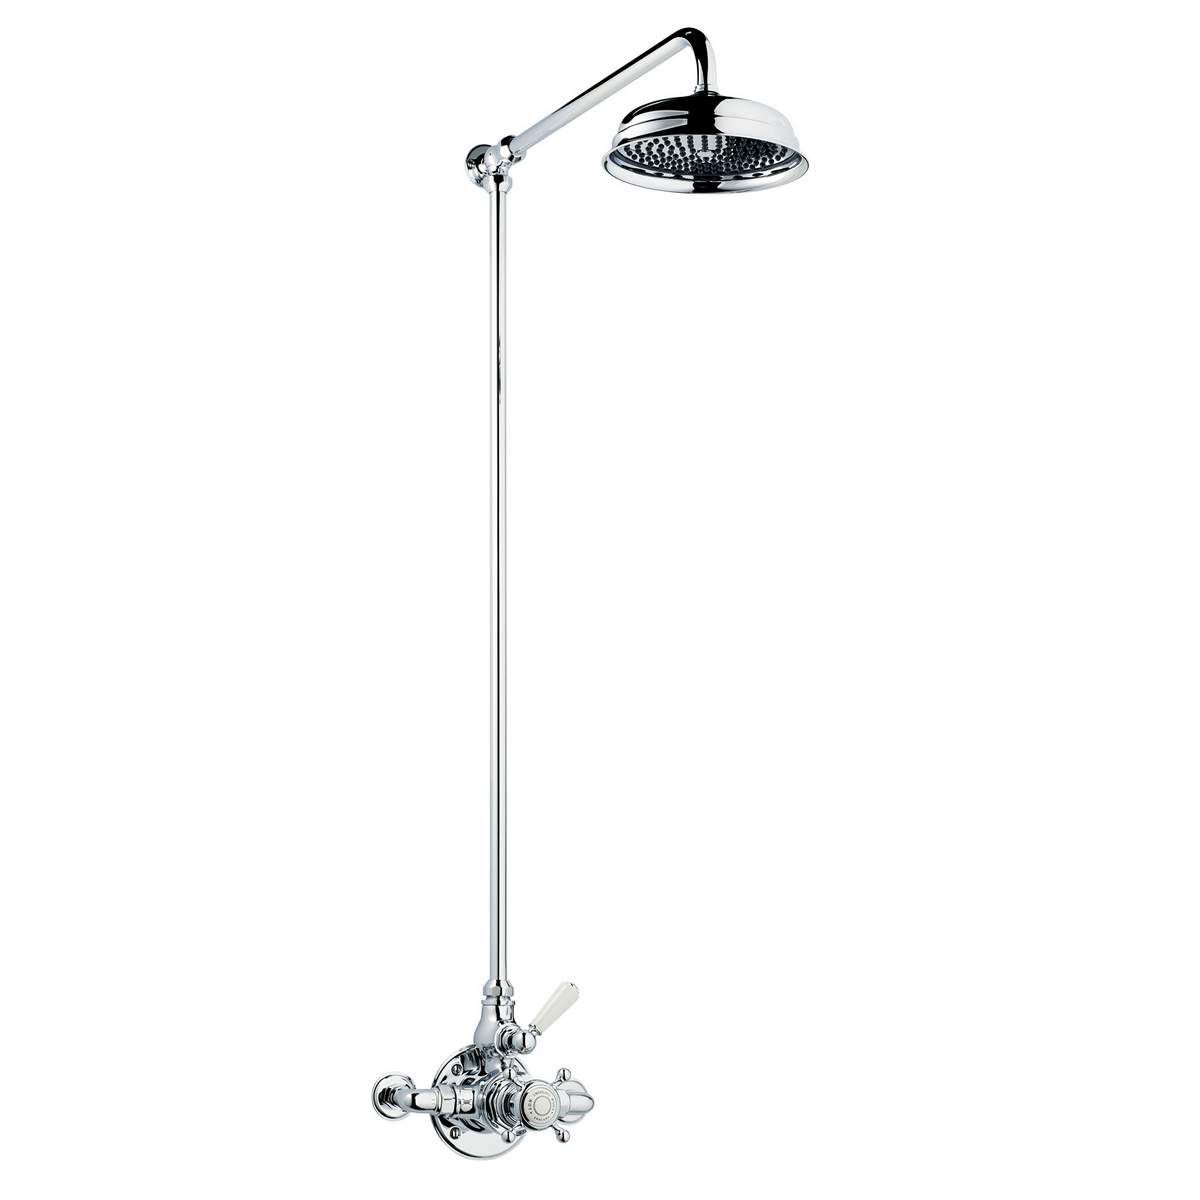 Picture of: Swadling Invincible Single Exposed Shower Mixer With Rigid Riser And Deluge Head Uk Bathrooms